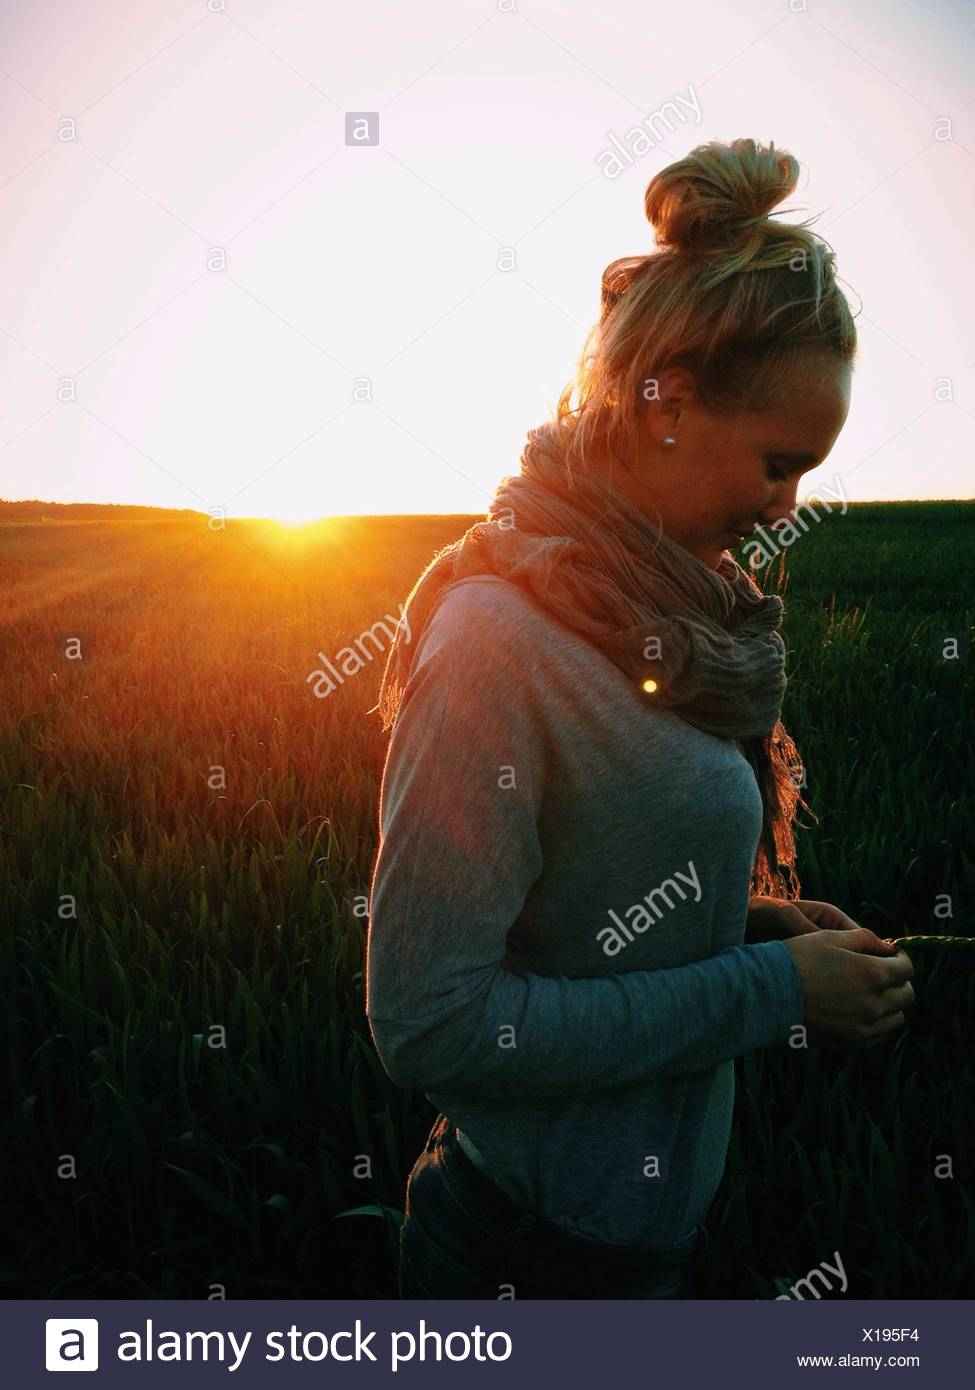 Side View of Young Woman Standing On Field at Sunset Photo Stock